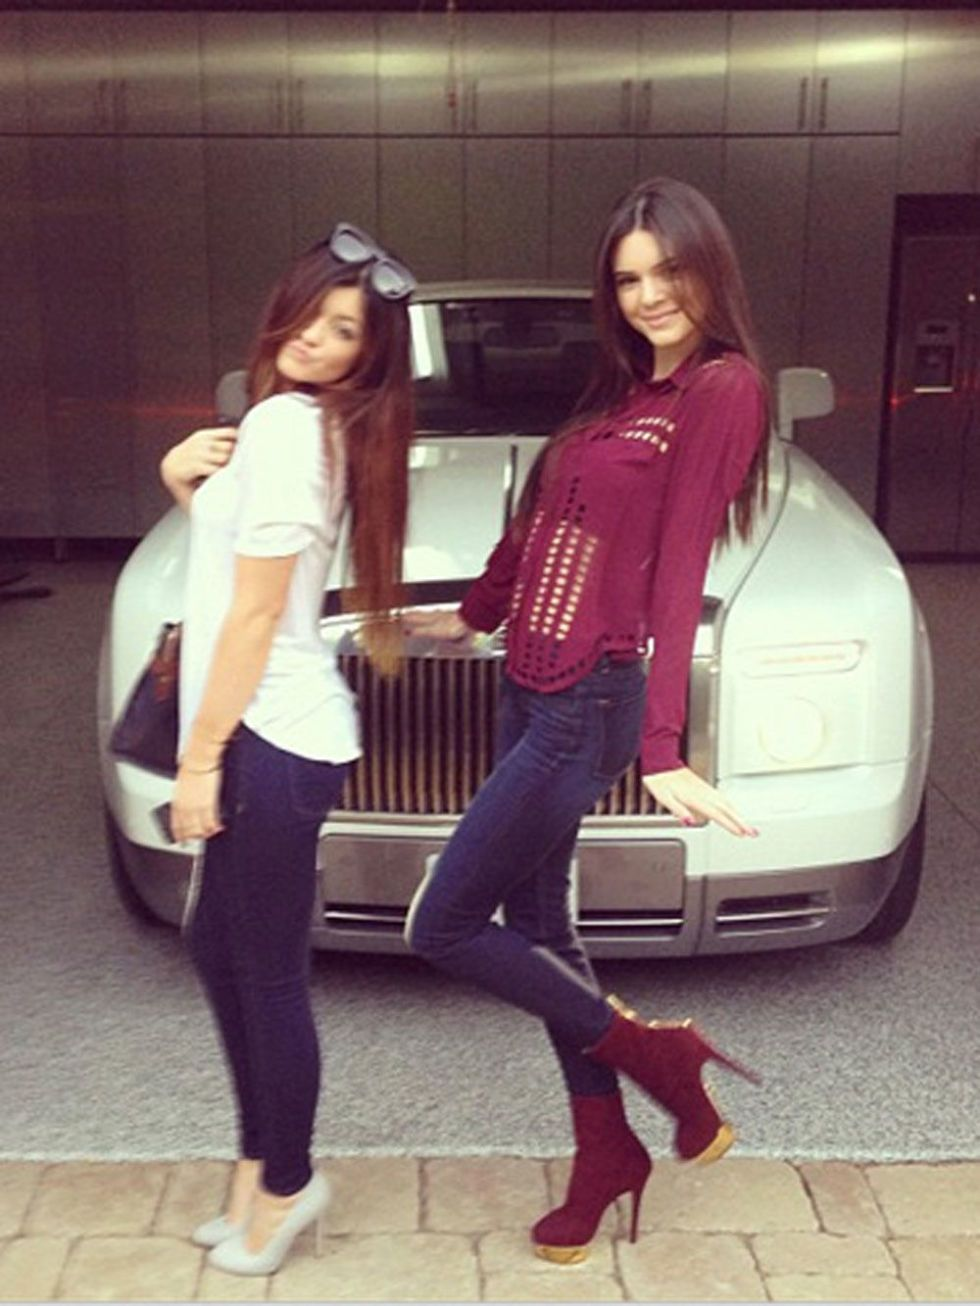 When they're not strutting down runways or designing their own clothes, Kendall and Kylie are just normal teenage girls—with awesome street style. Just check out how they dress up a pair of jeans! Adding a pair of heels in a fun color that matches your top turns a basic pair of skinnies into a killer outfit!